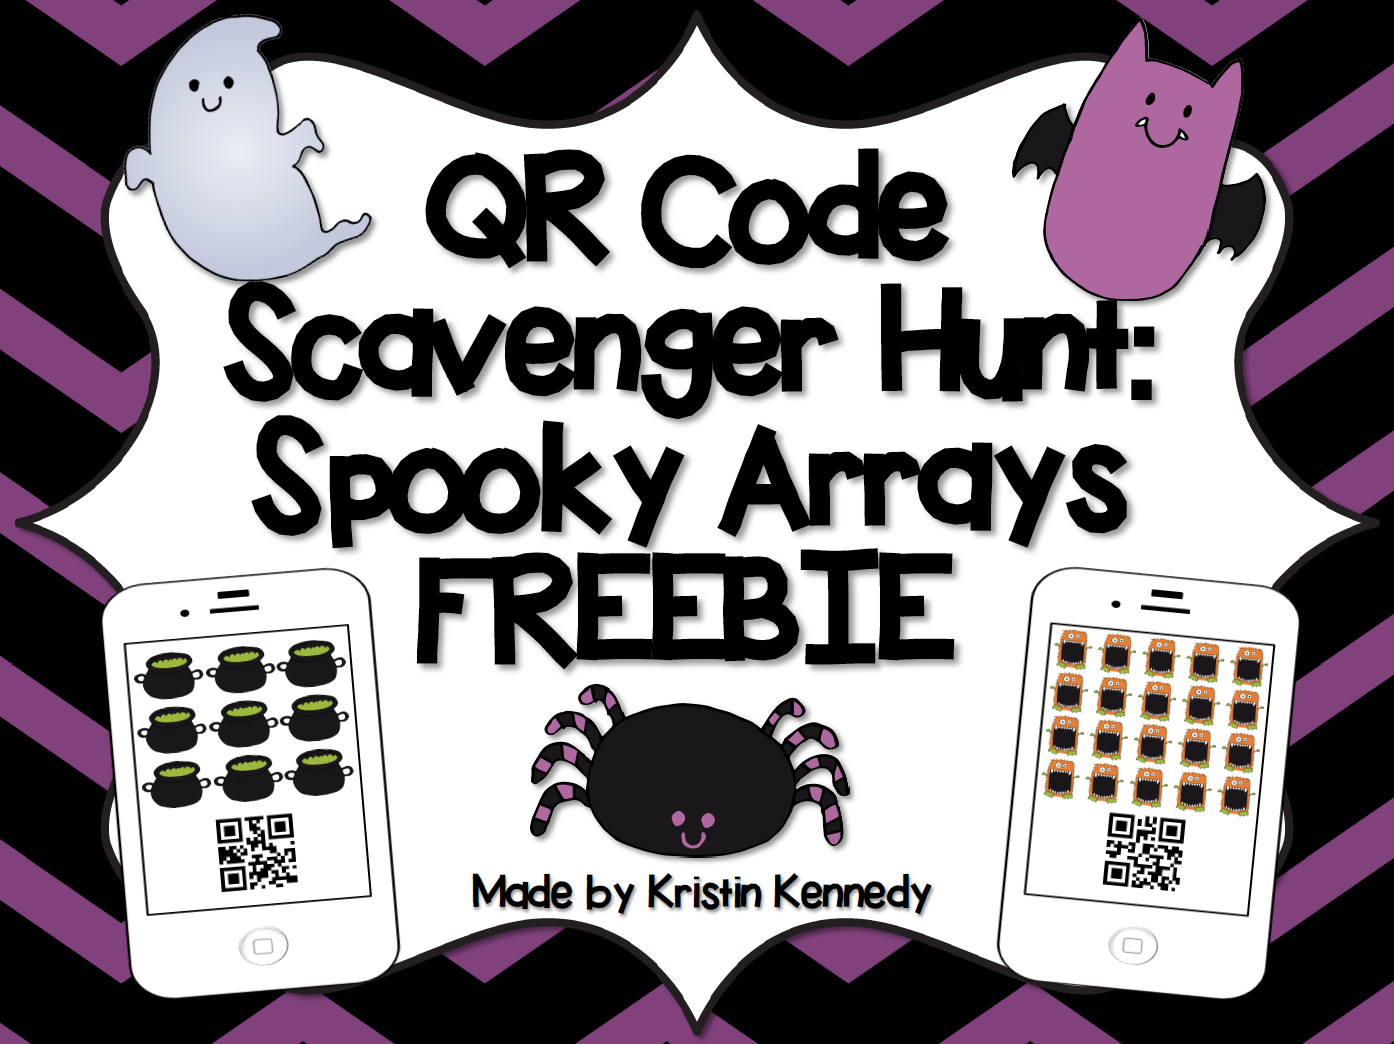 Spooky Arrays And Halloween Crafts For The Home